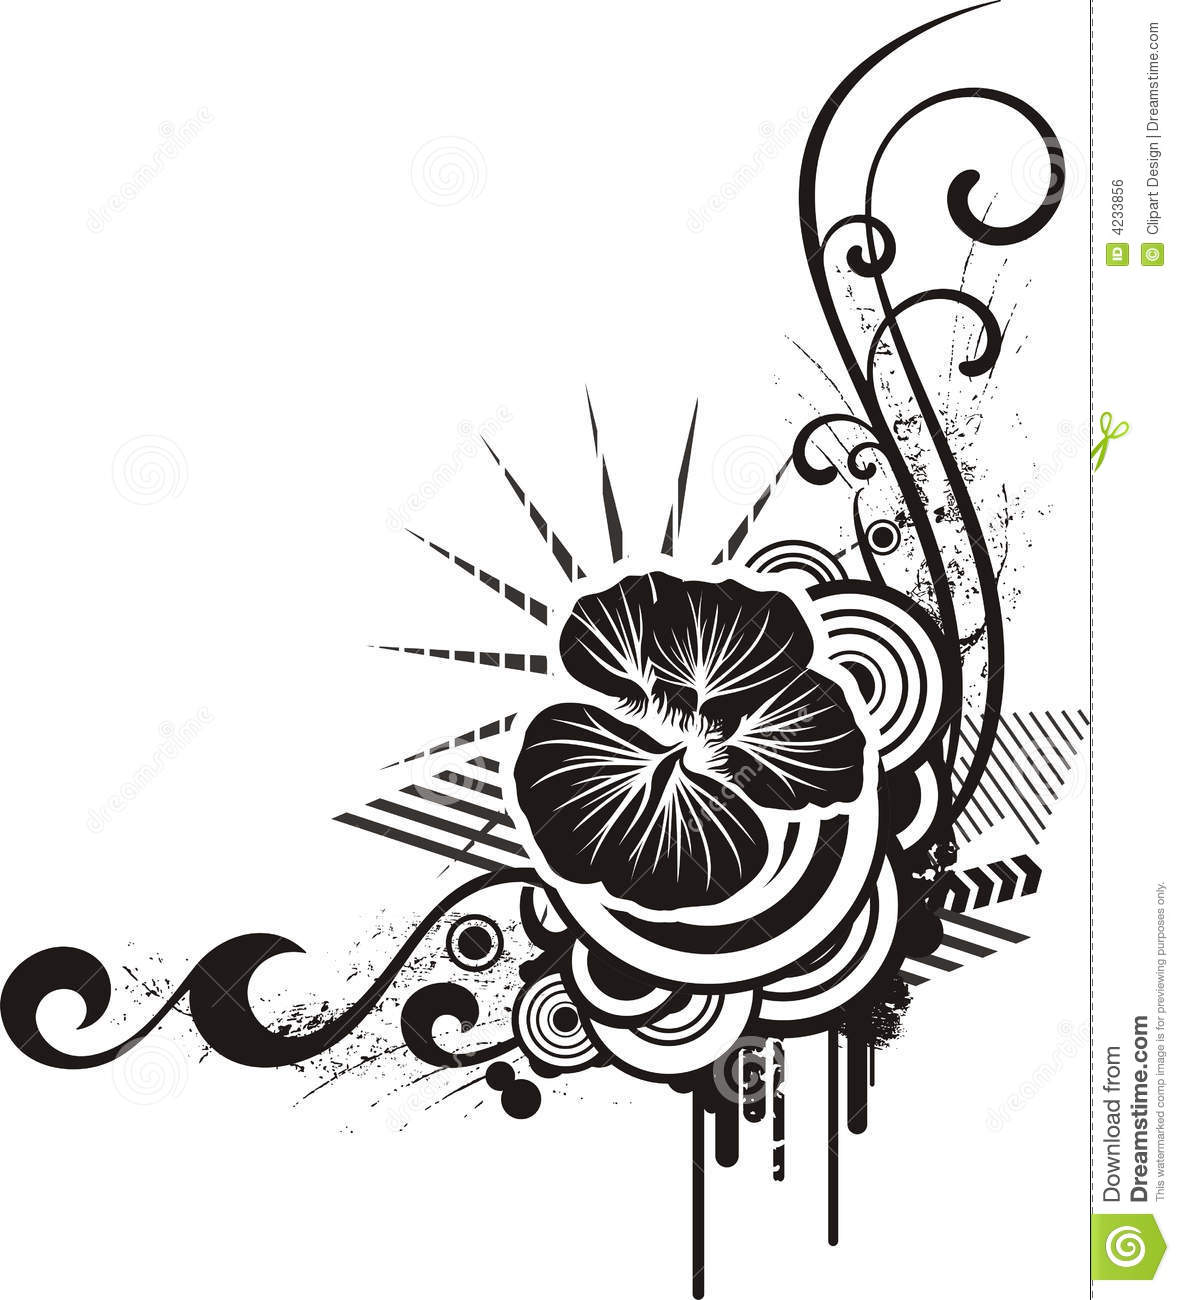 Black Amp White Floral Designs Stock Vector